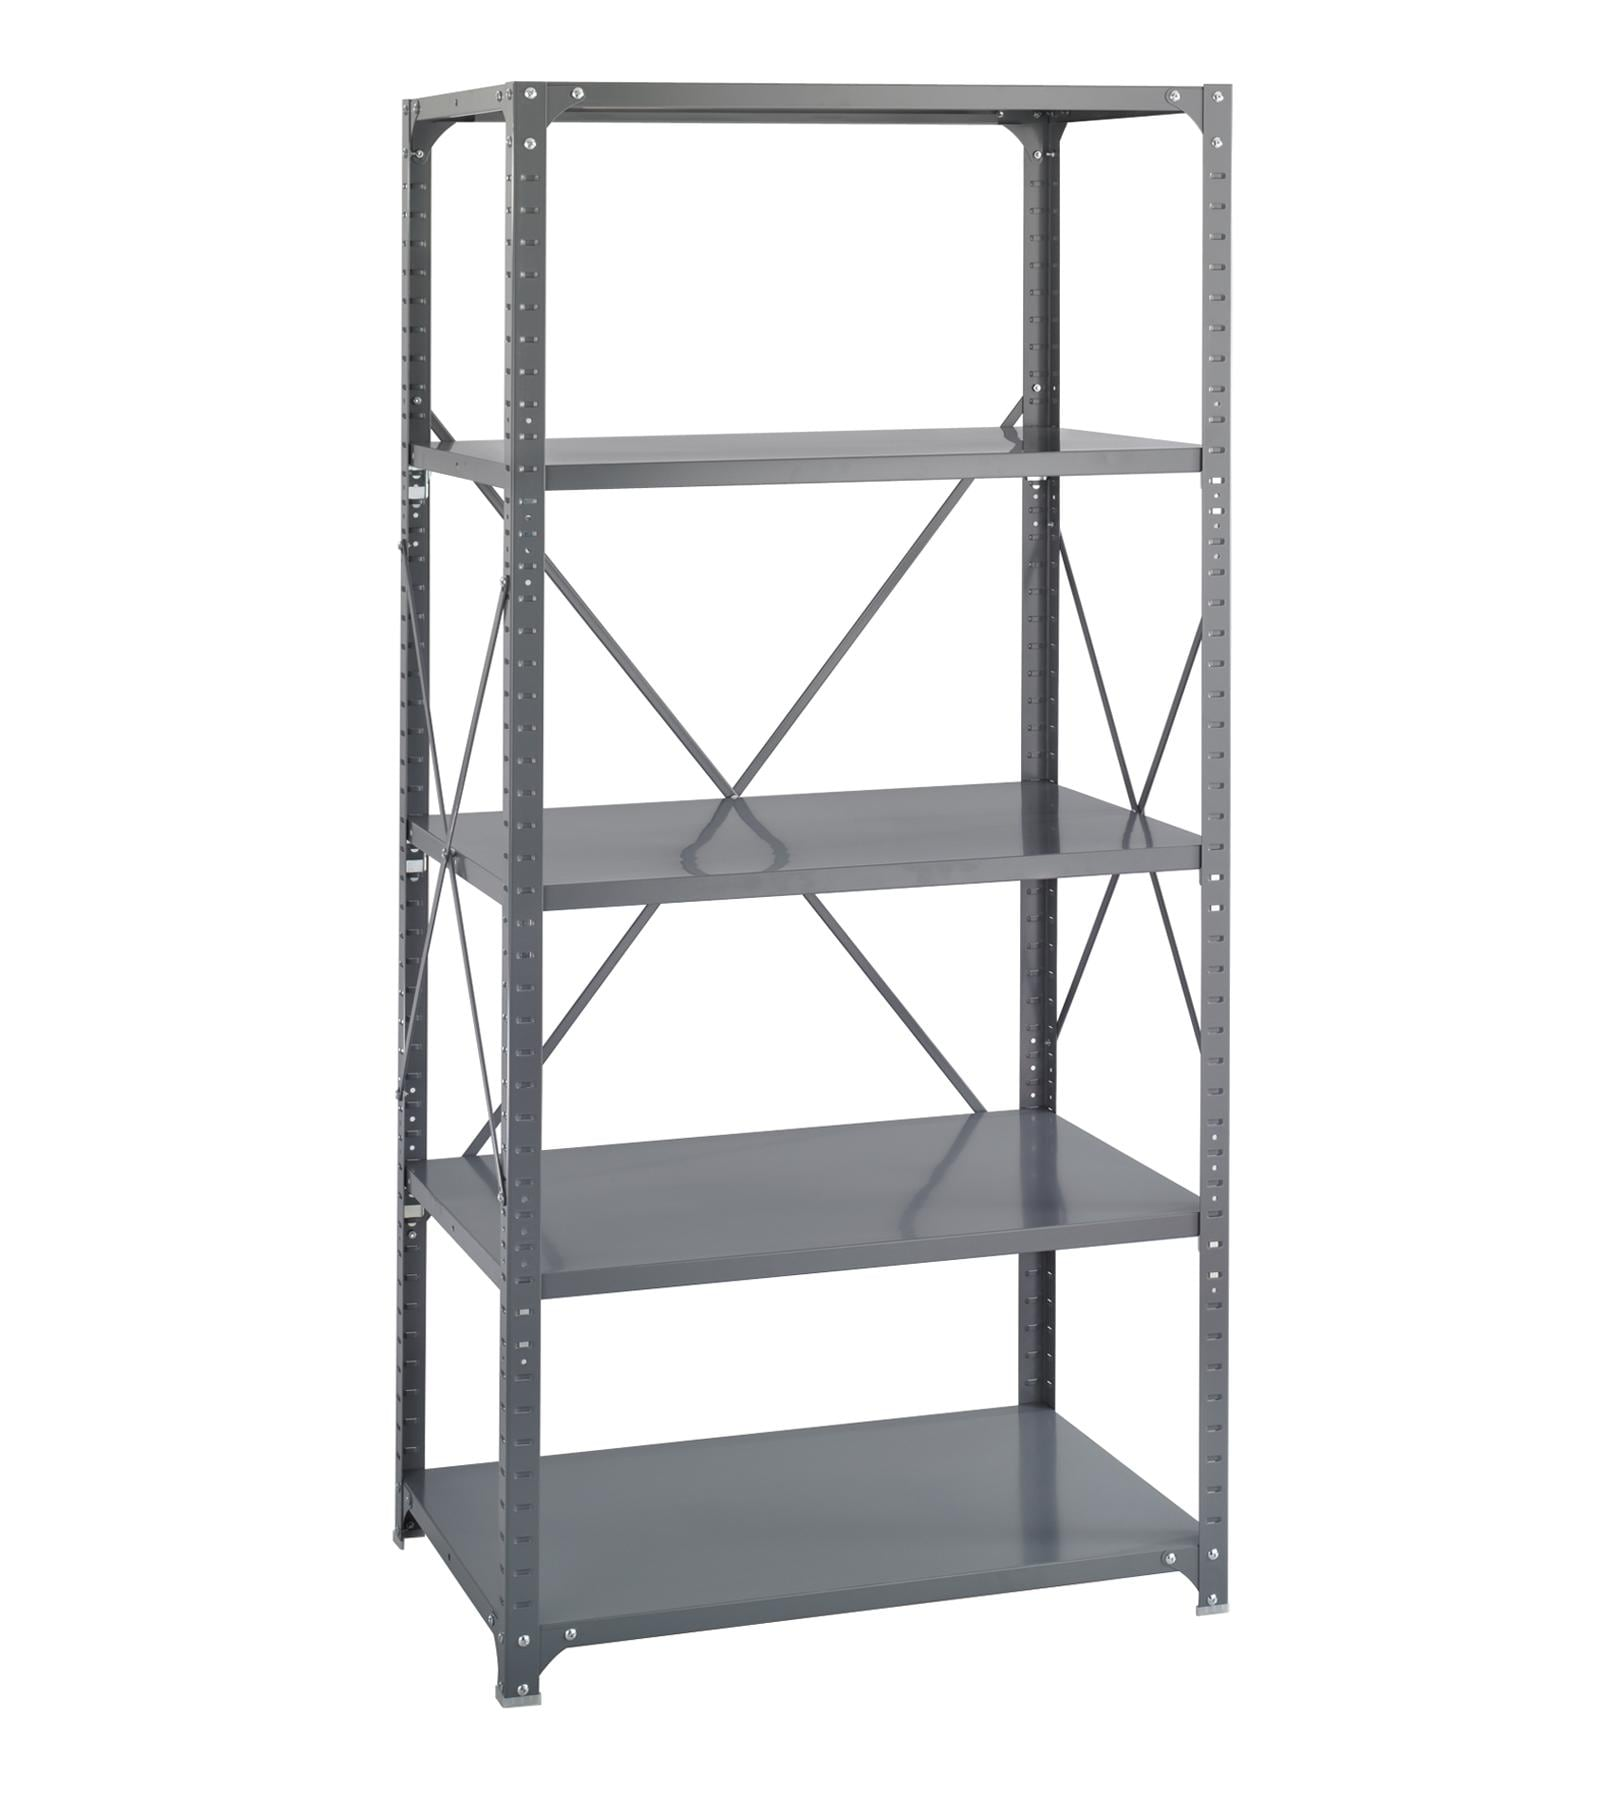 Safco 5-shelf 36-inch Wide x 24-inch Deep x 72-inch High Commercial Shelf Kit